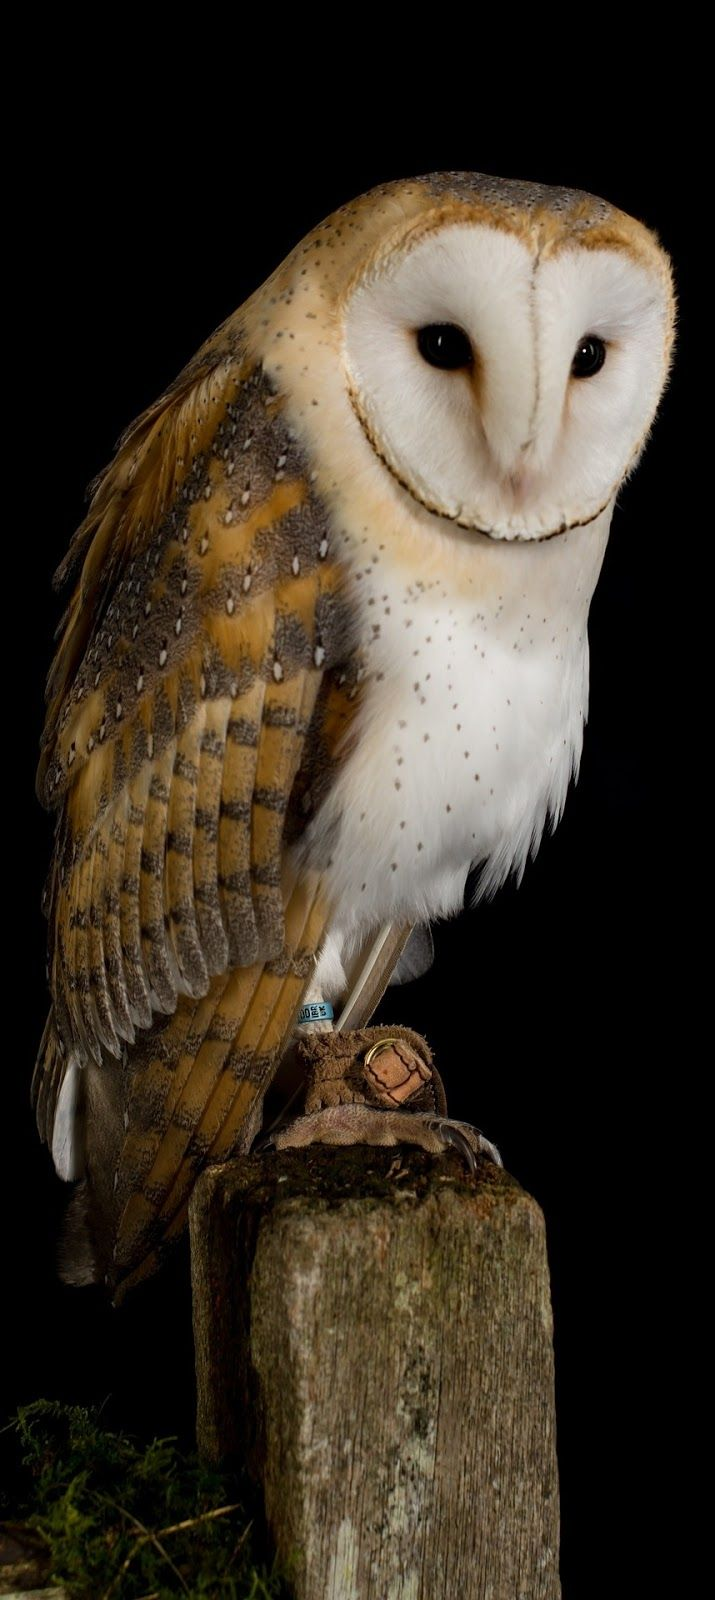 Image of: Diurnal Amazing Barn Owl Nocturnal Facts owl birds animals beautifulbirds Pinterest Amazing Barn Owl Nocturnal Facts Owls Pinterest Aves Lechuzas